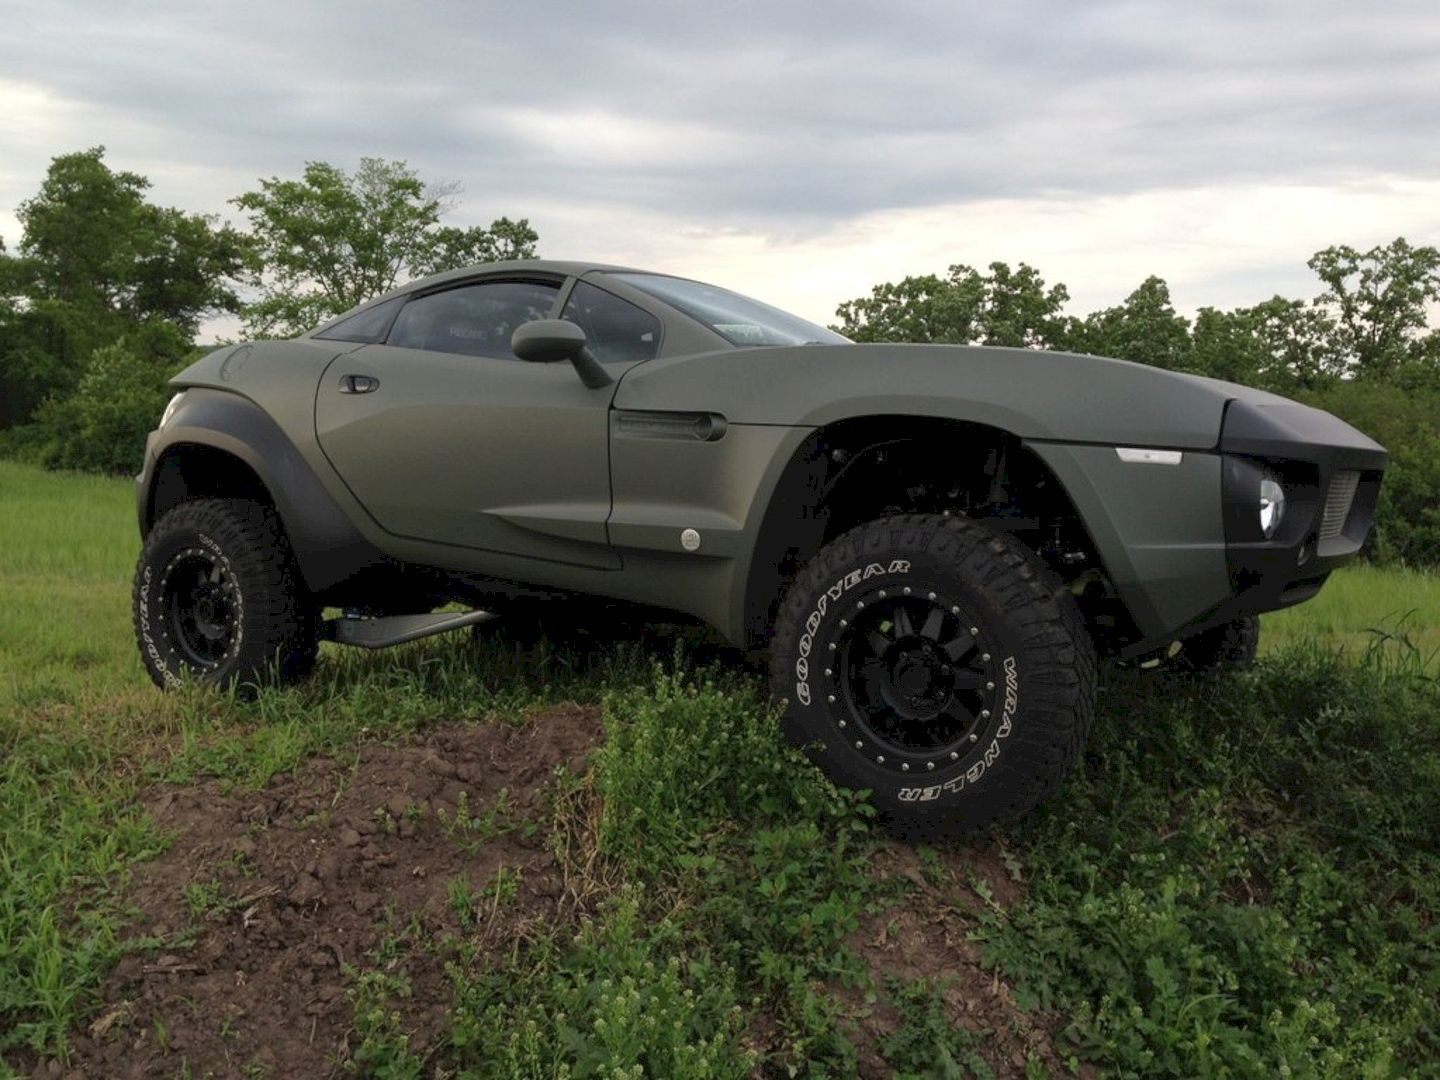 Off road vehicle laws